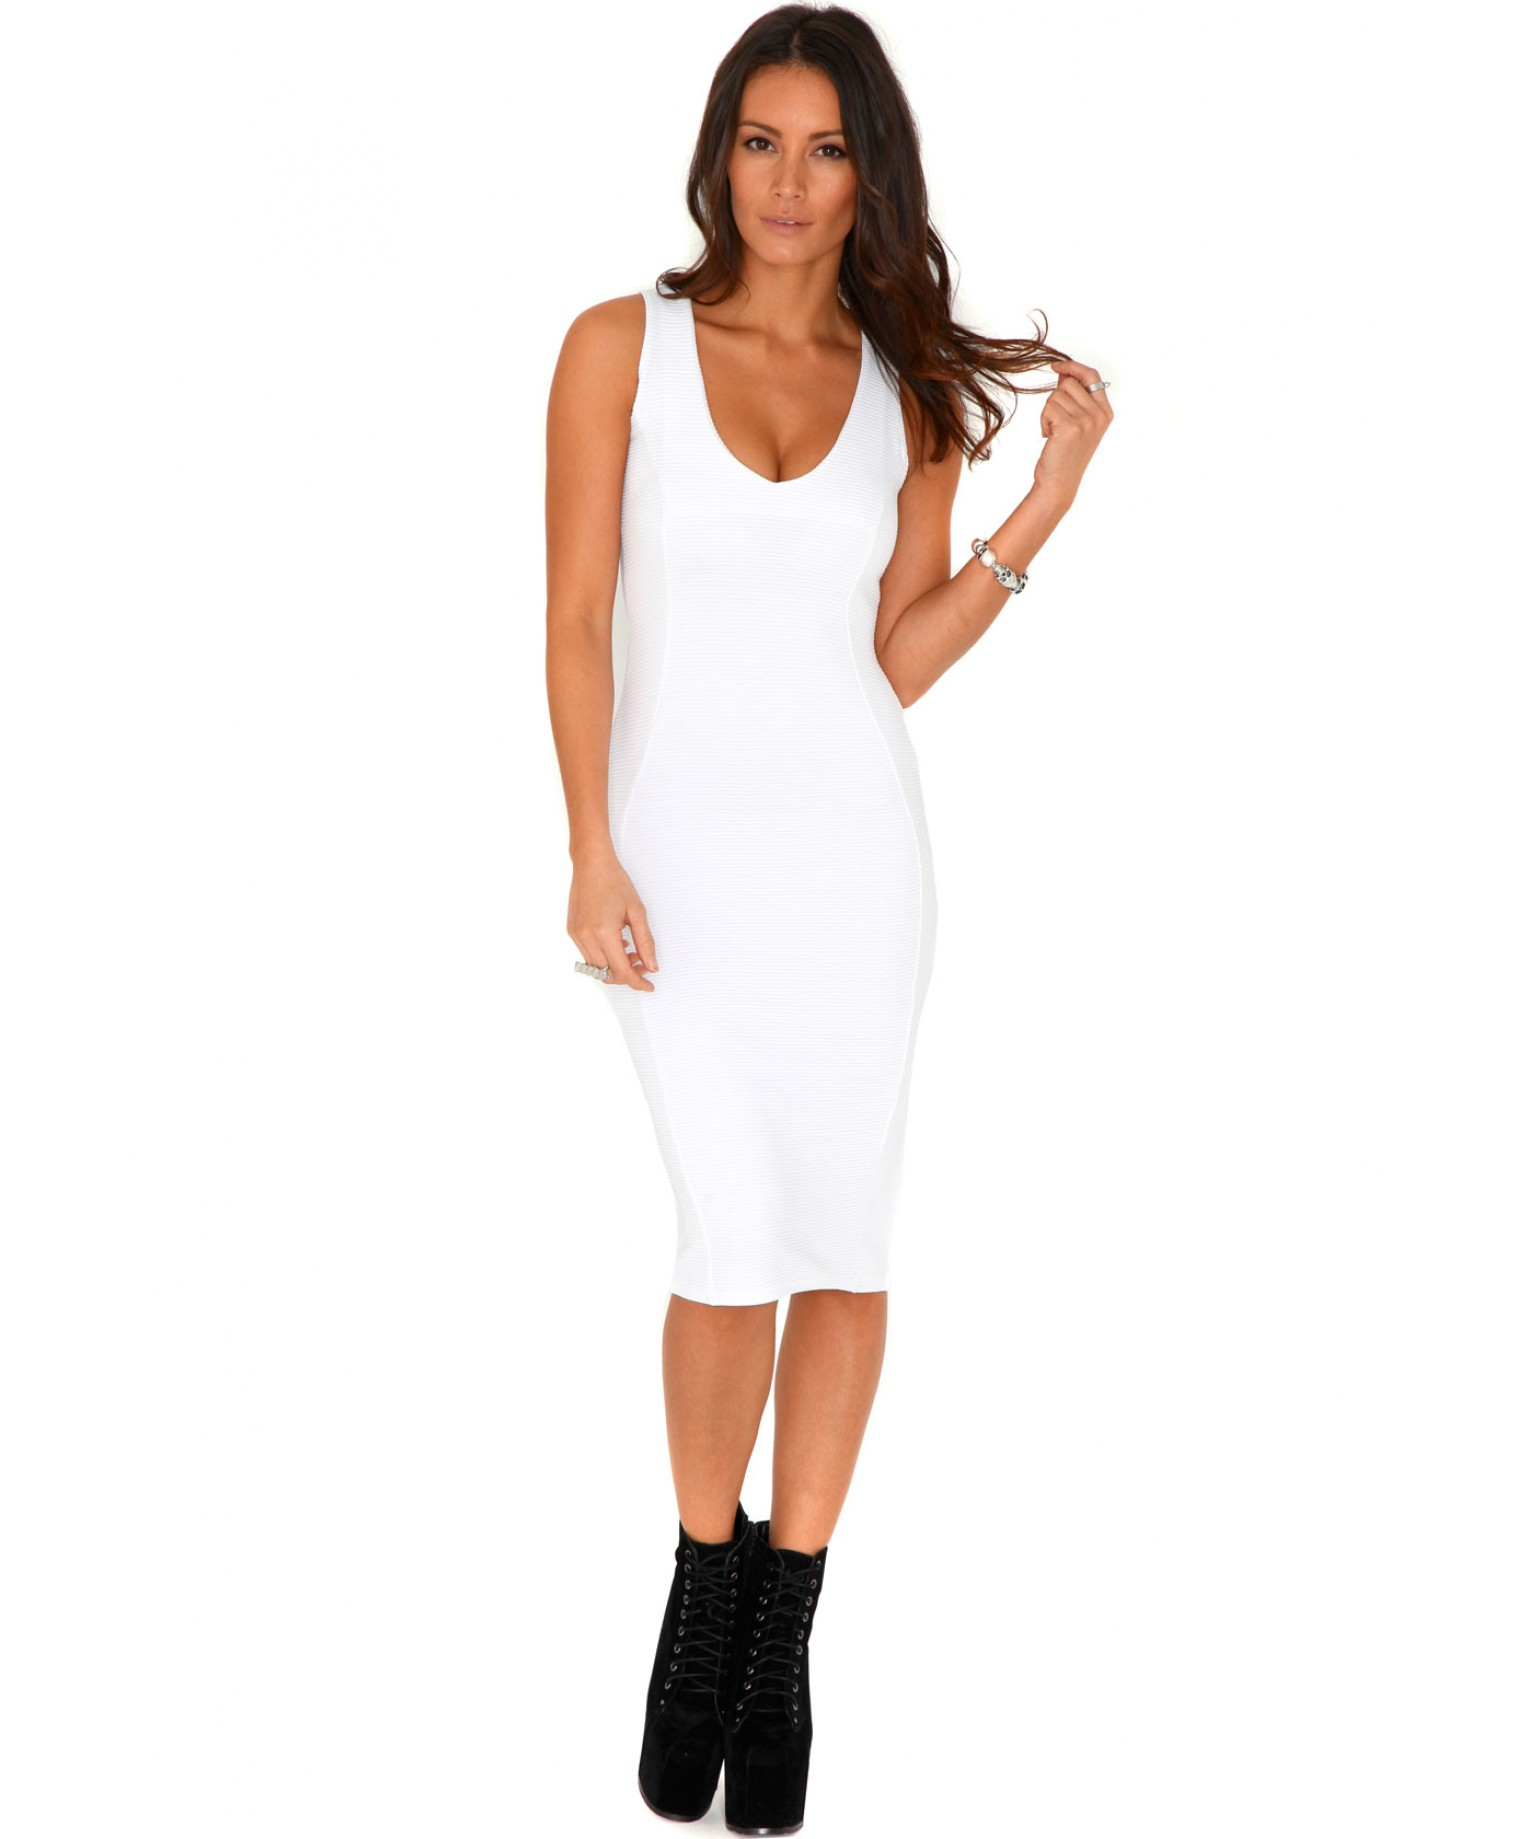 bdad3846e73f Missguided Ryana Ribbed Bodycon Midi Dress In White in White - Lyst